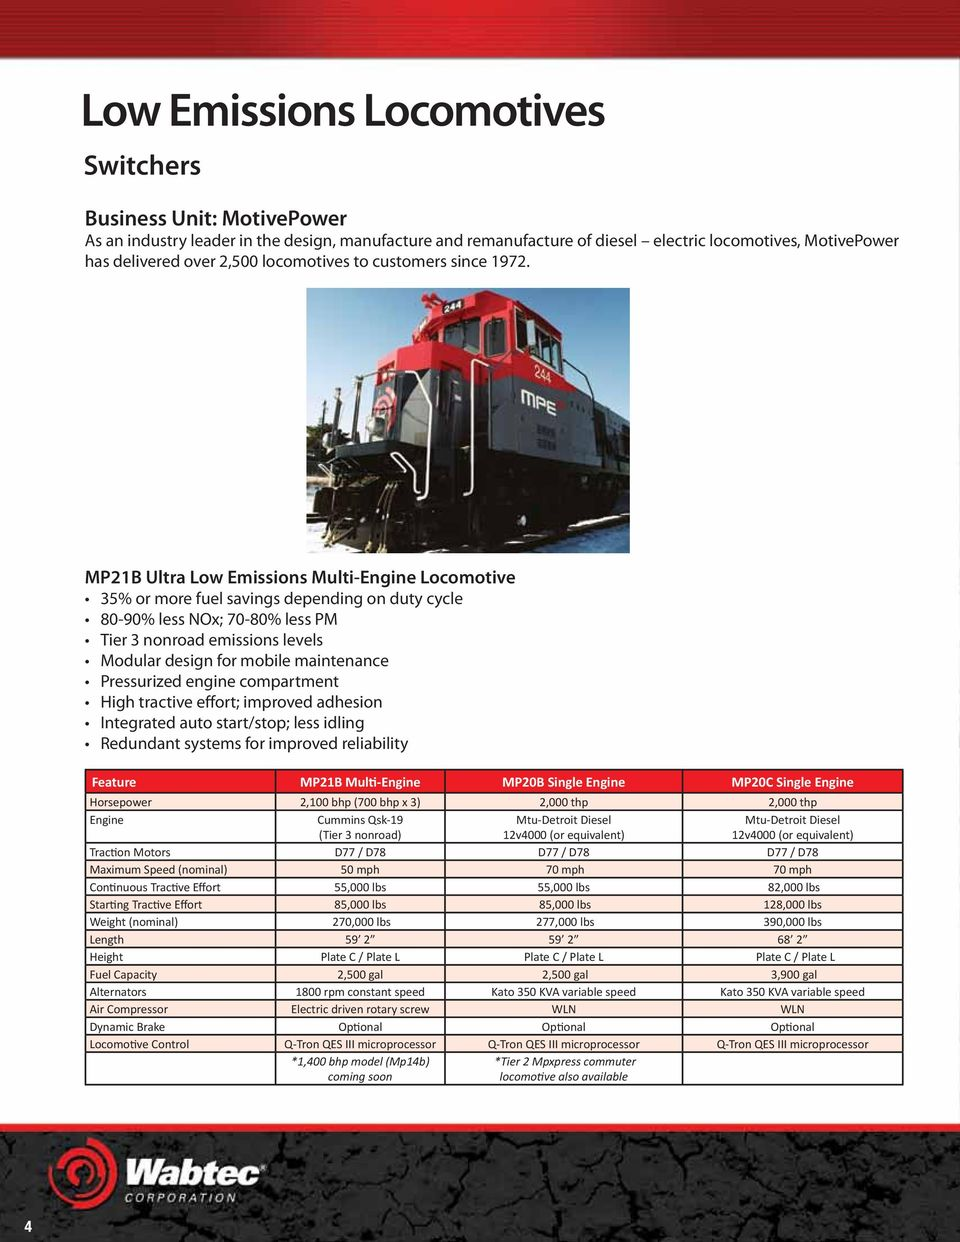 MP21B Ultra Low Emissions Multi-Engine Locomotive 35% or more fuel savings depending on duty cycle 80-90% less NOx; 70-80% less PM Tier 3 nonroad emissions levels Modular design for mobile